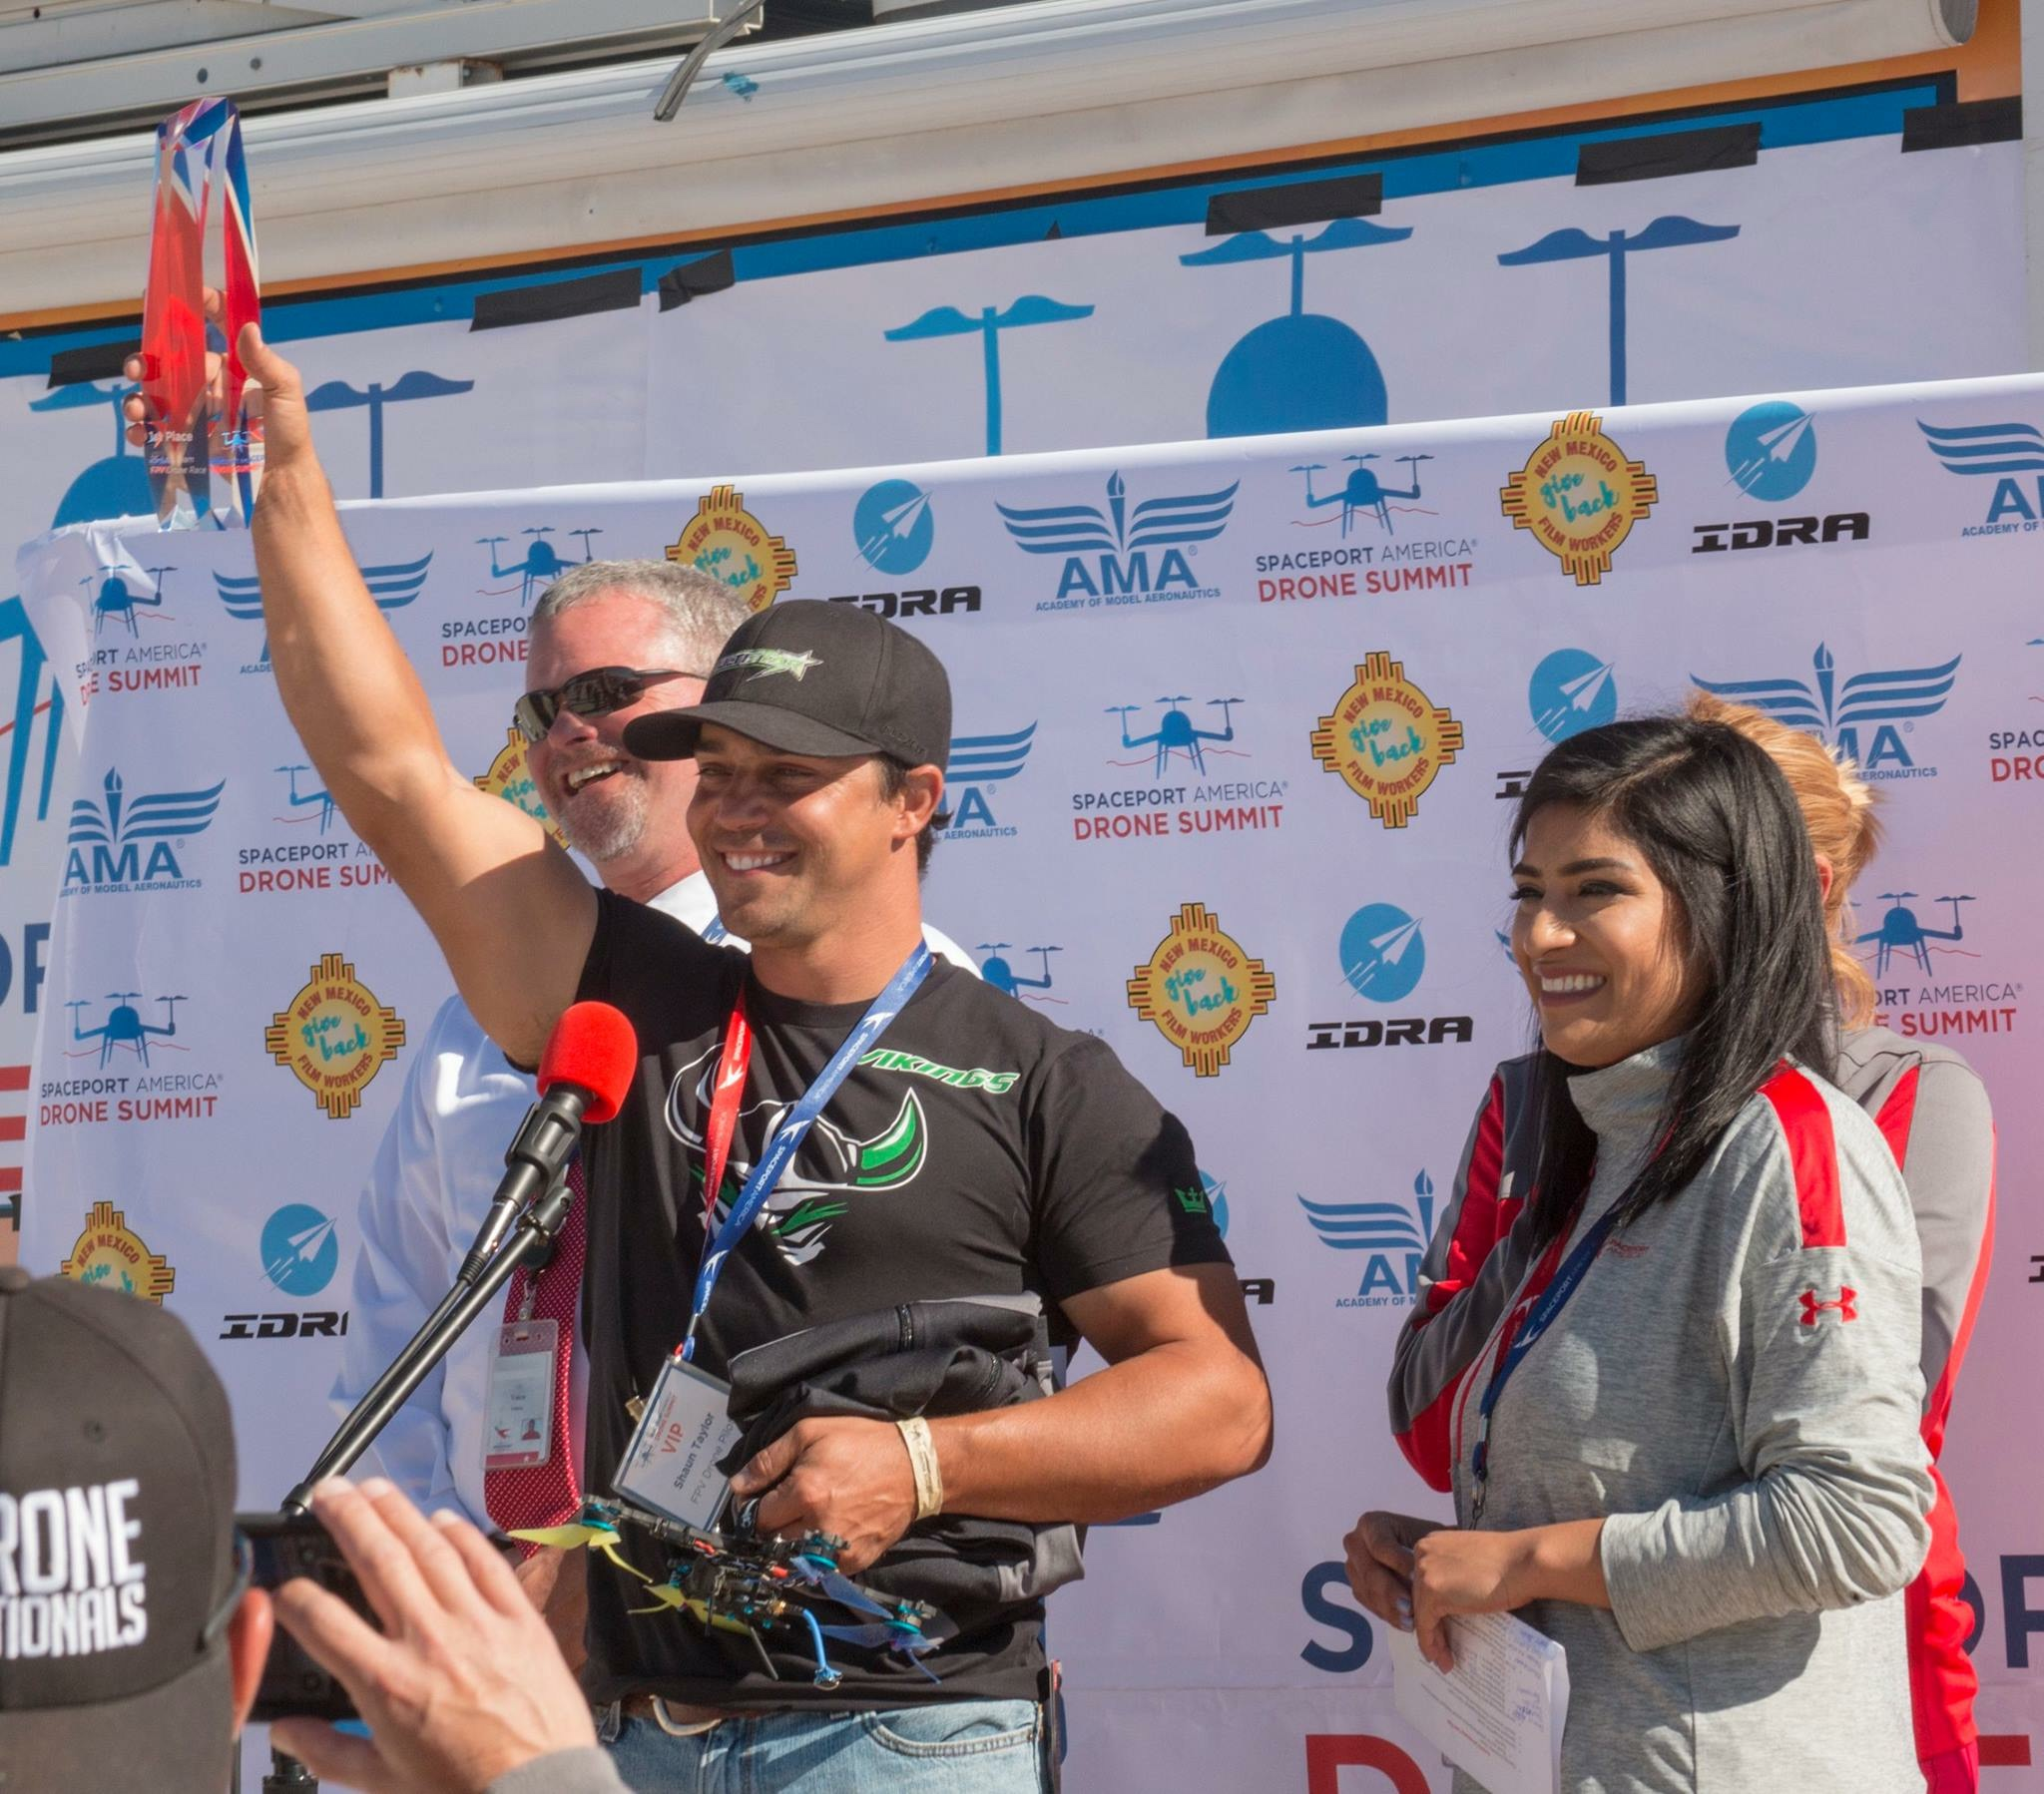 1st Place-Spaceport America Drone Summit